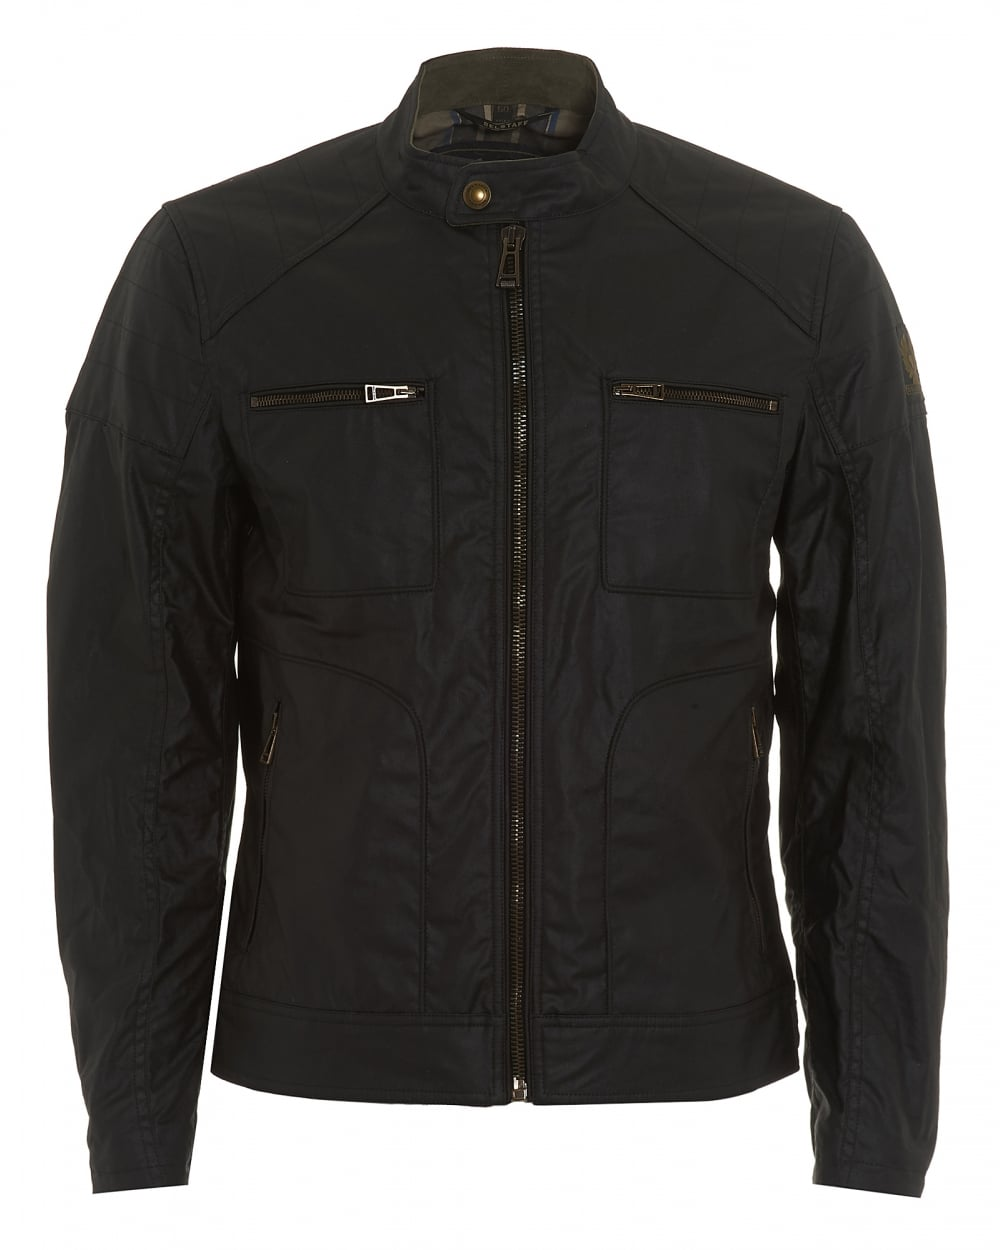 belstaff mens weybridge jacket black waxed jersey jacket. Black Bedroom Furniture Sets. Home Design Ideas